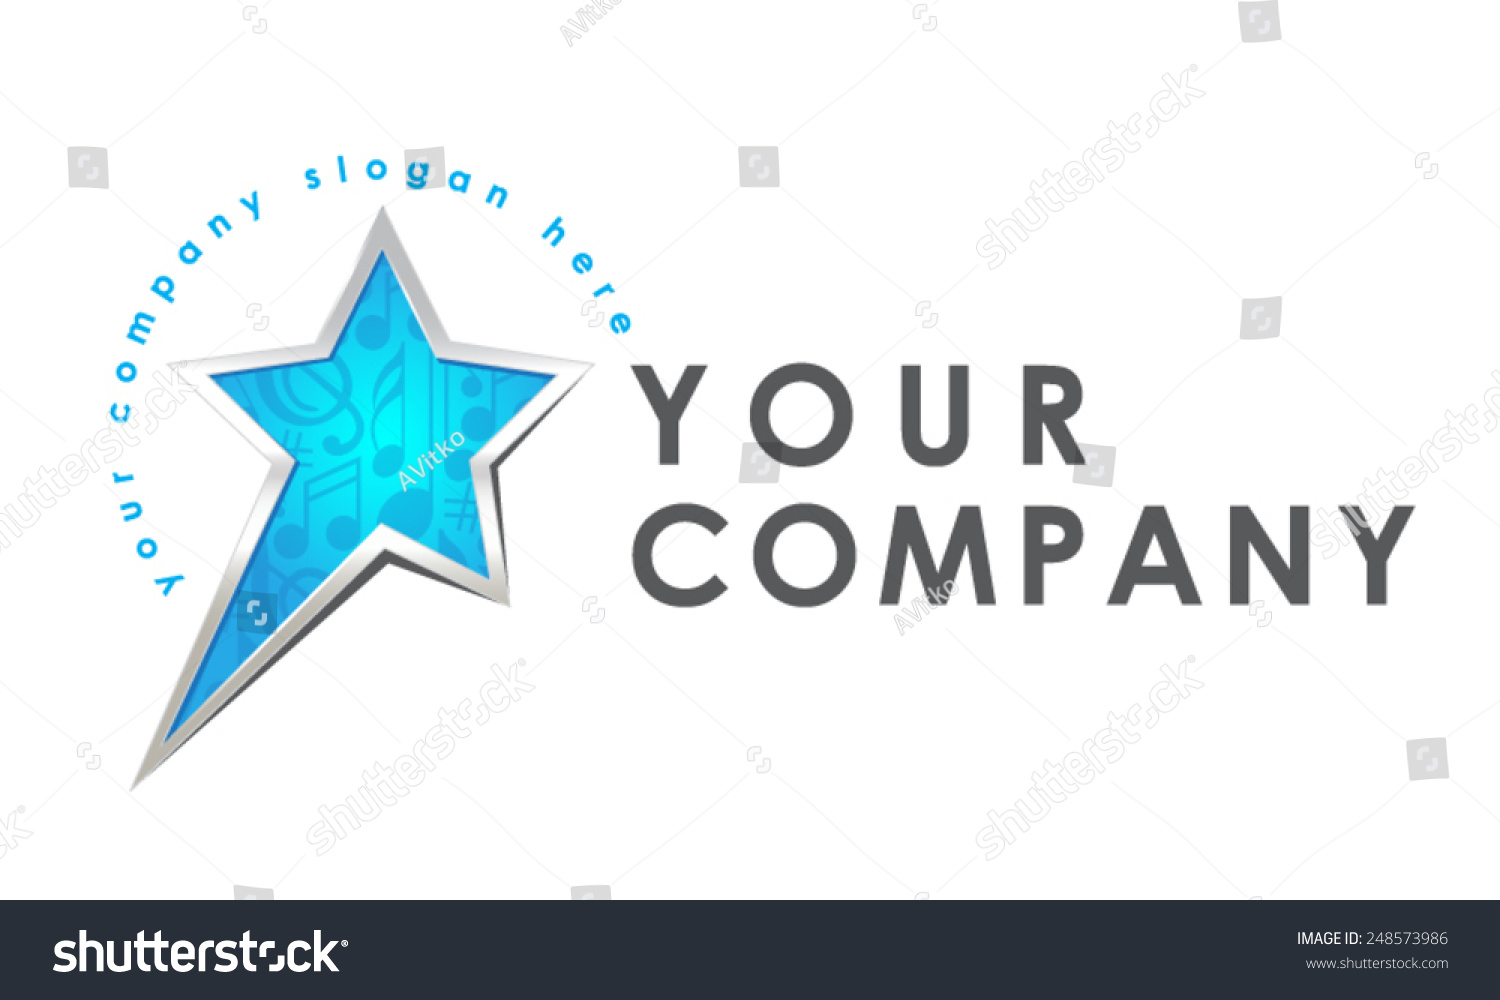 Lovely 1 Hexagon Template Small 1 Page Proposal Template Square 110 Block Label Template 2014 June Calendar Template Young 2015 Office Calendar Template Fresh2015 Resume Keywords Logo Template Vector Shining Star Music Stock Vector 248573986 ..